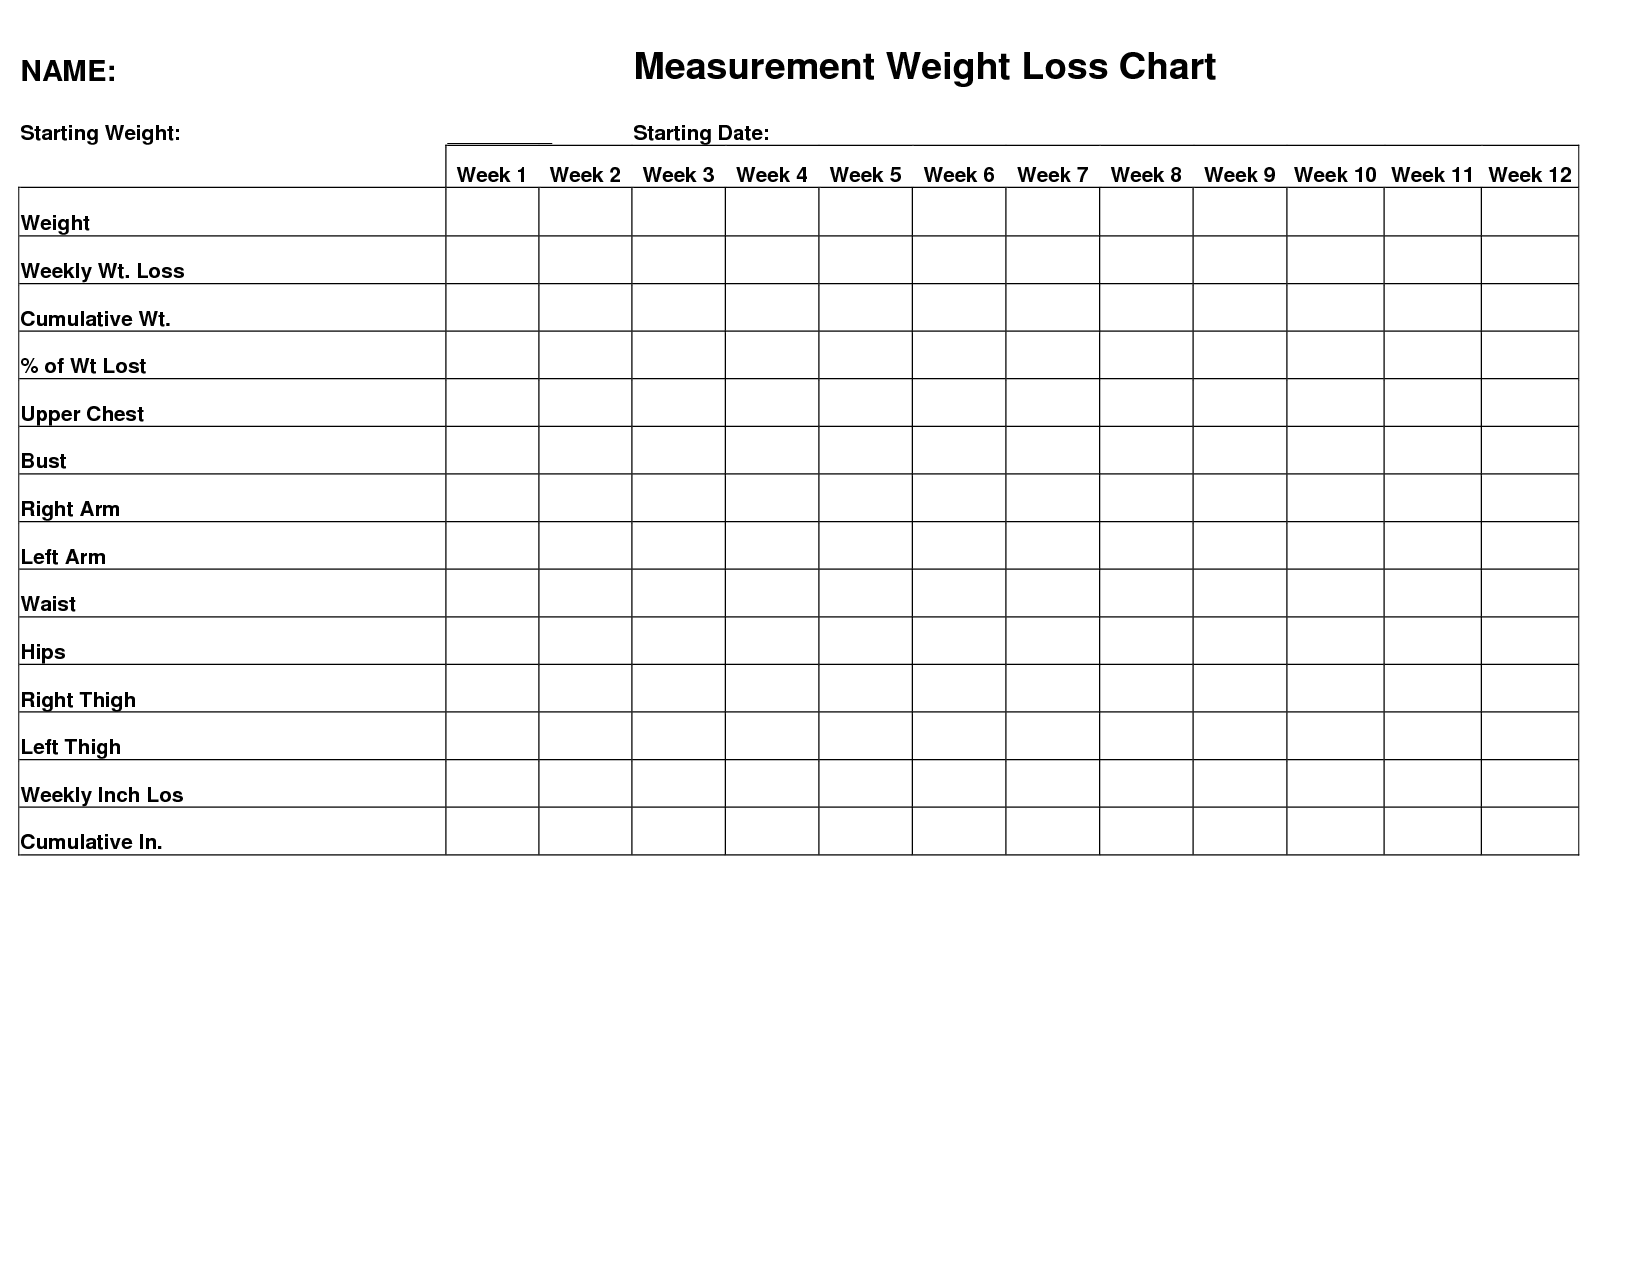 female weight measurement body silhouette outline – Girls Growth Chart Template